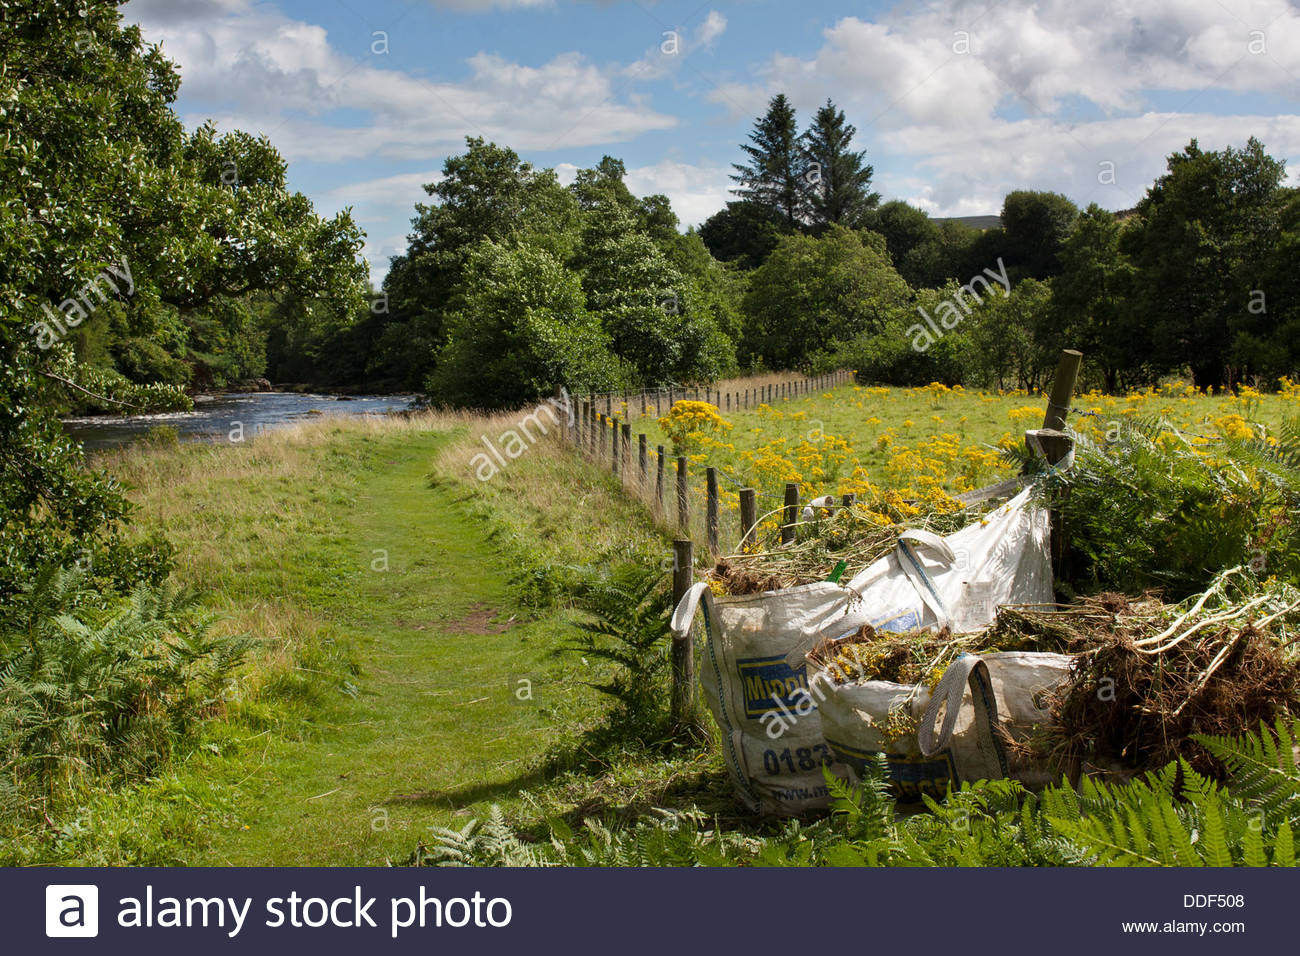 On the Pennine Way, near Low Force on the River Tees in the North Riding, ragwort has been gathered for disposal. Stock Photo